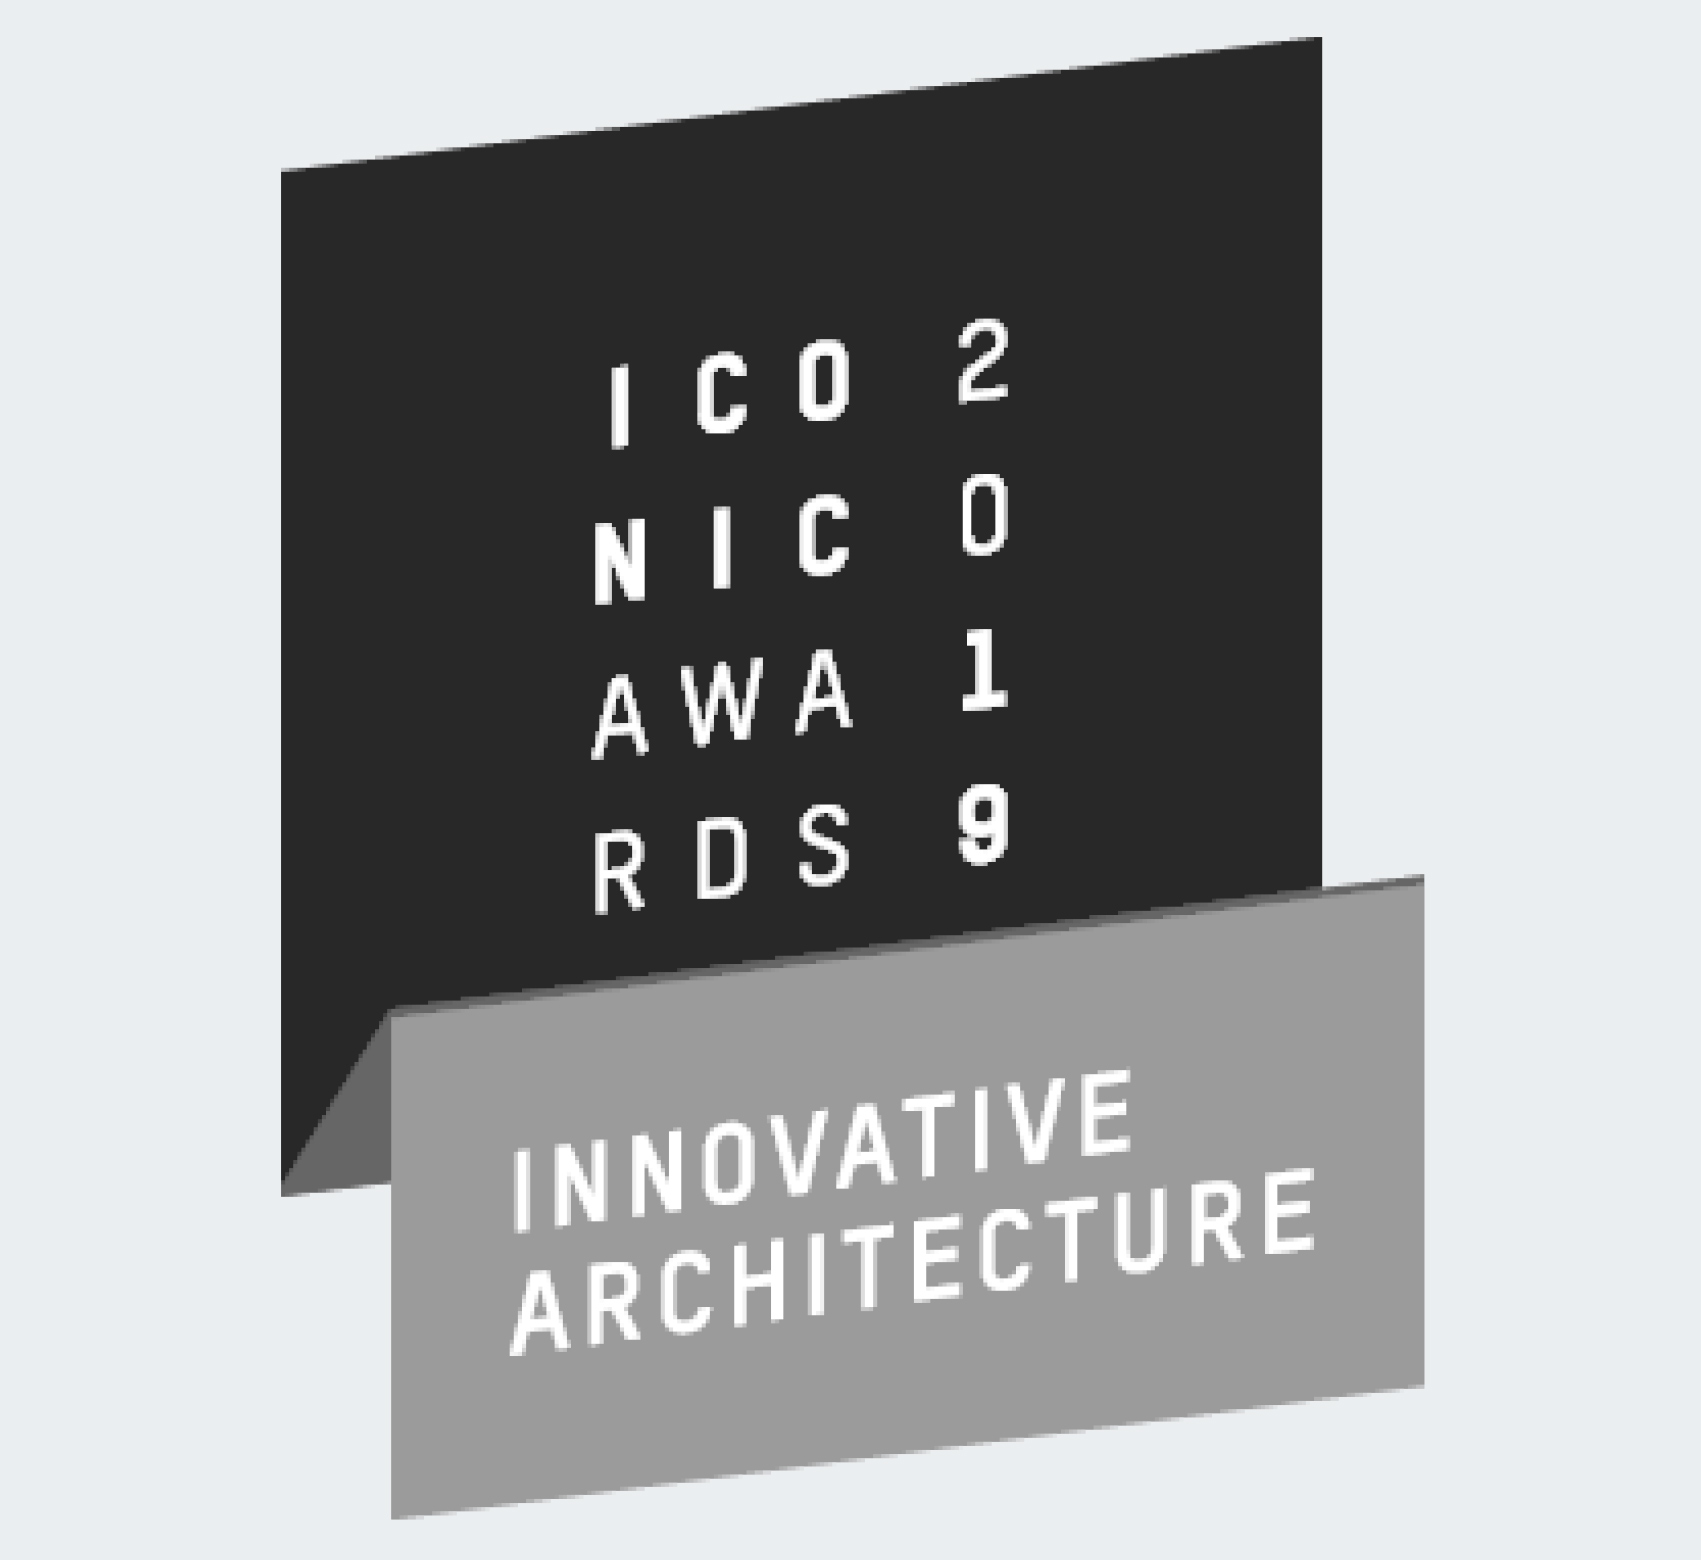 Iconic Awards 2019 – Innovative Architecture